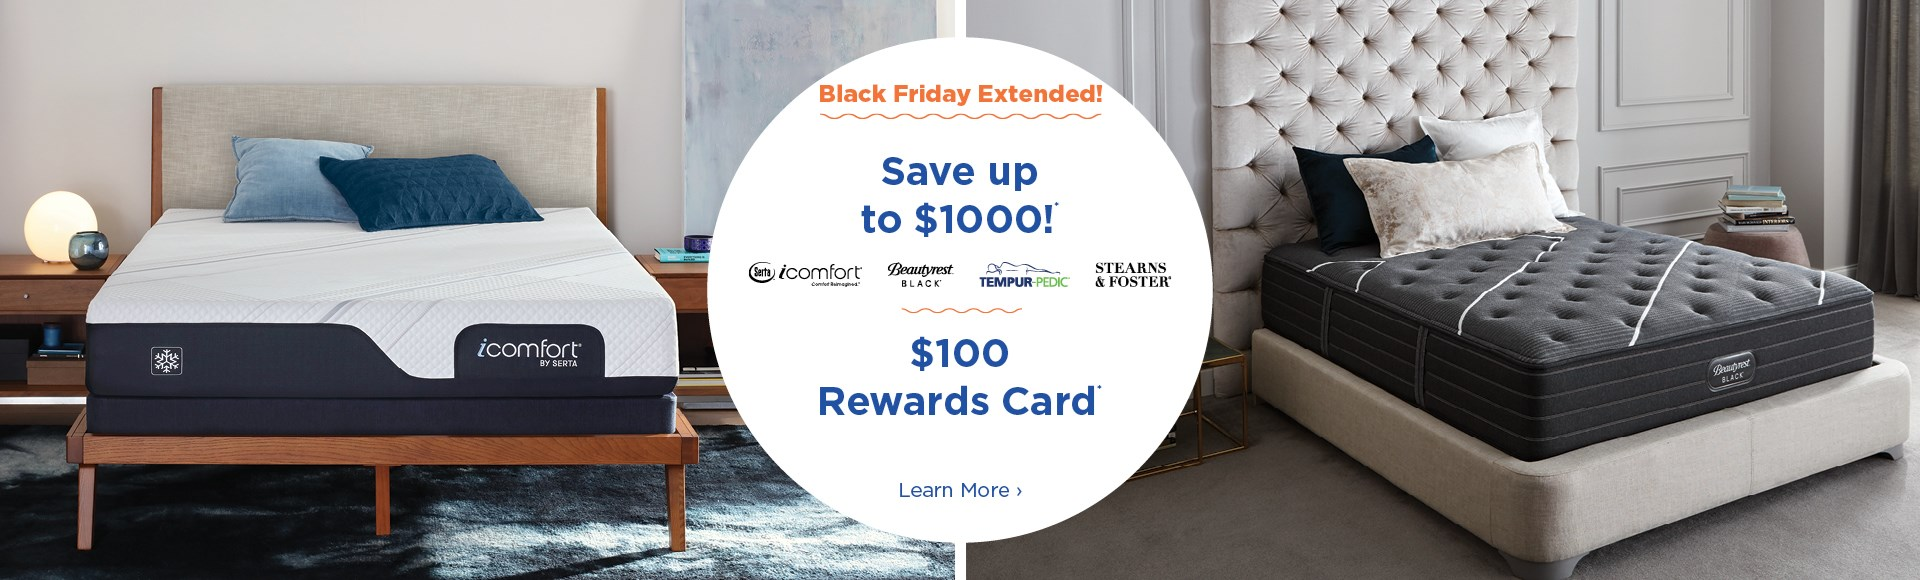 Black Friday Extended. Save up to $1000 on select mattresses. See store for details.